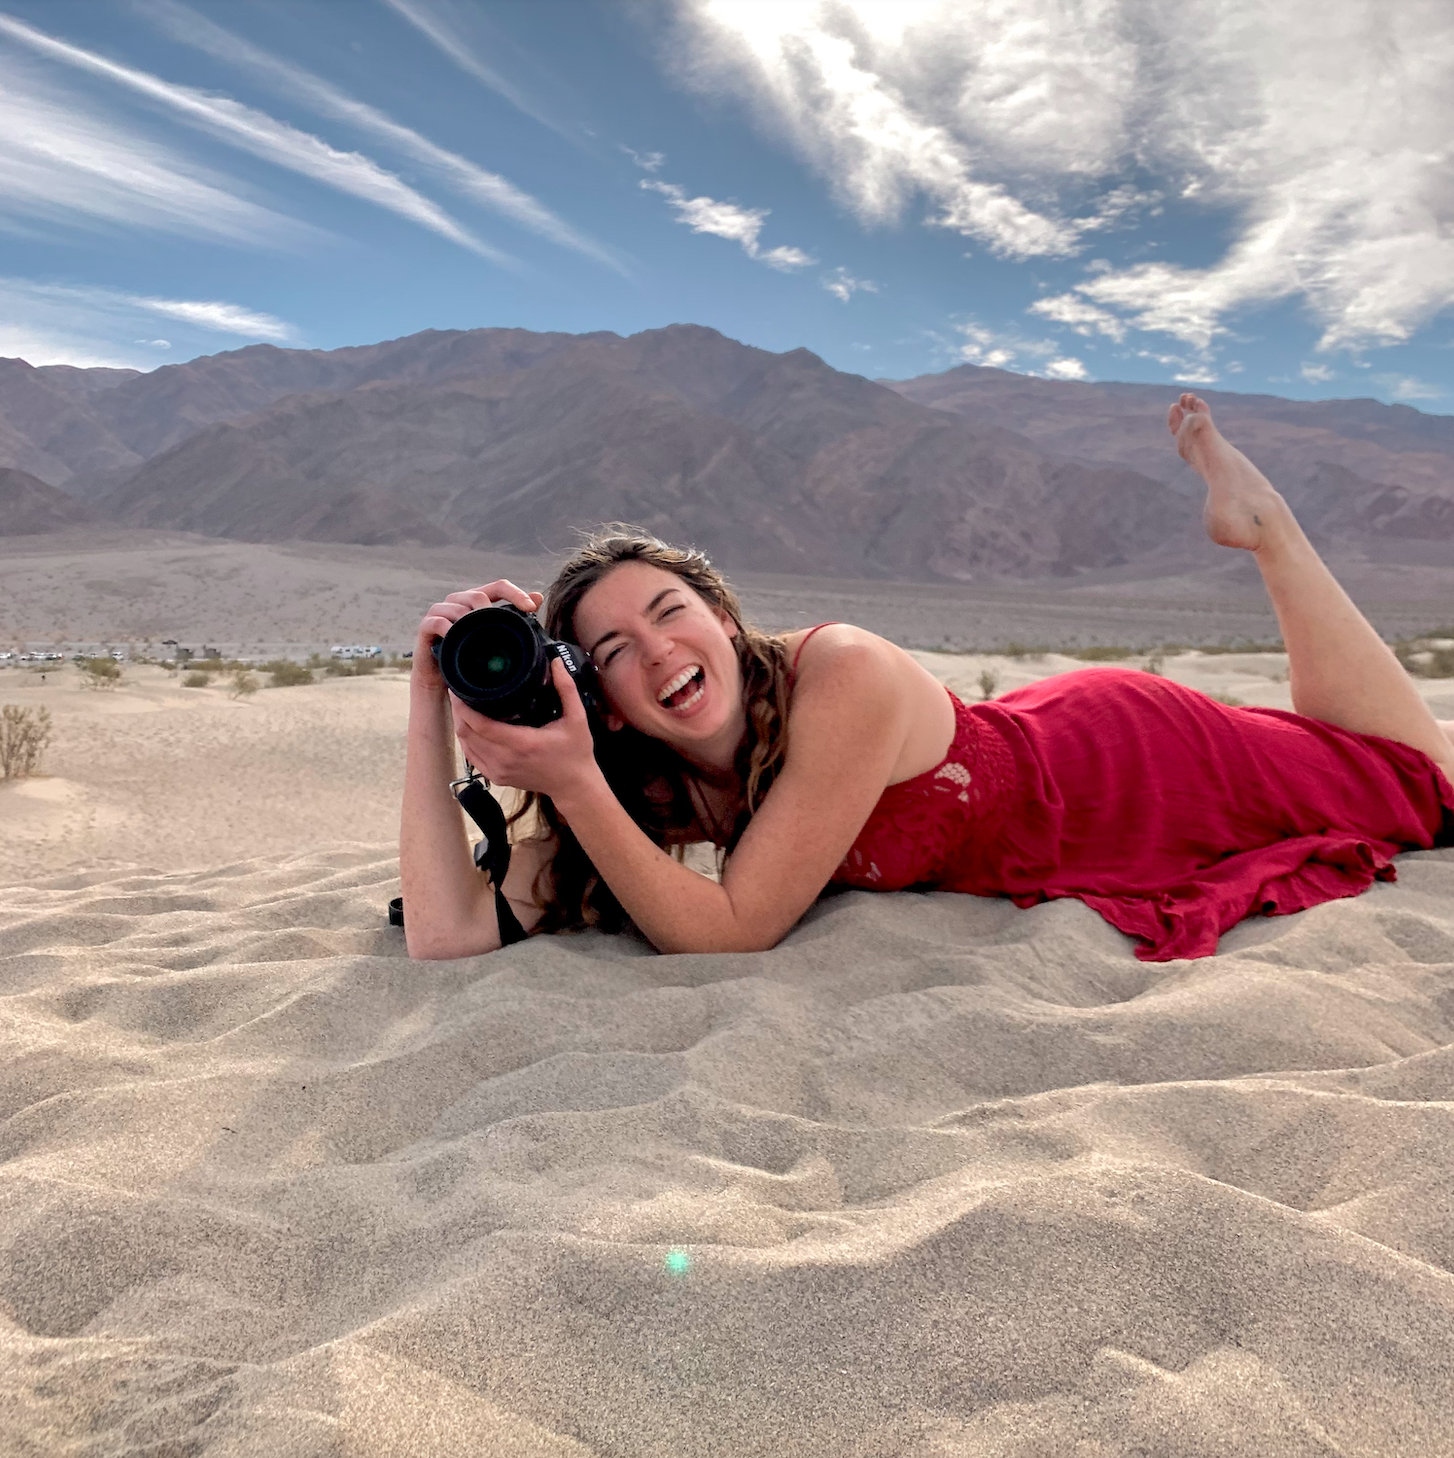 Girl laying in sand with large camera